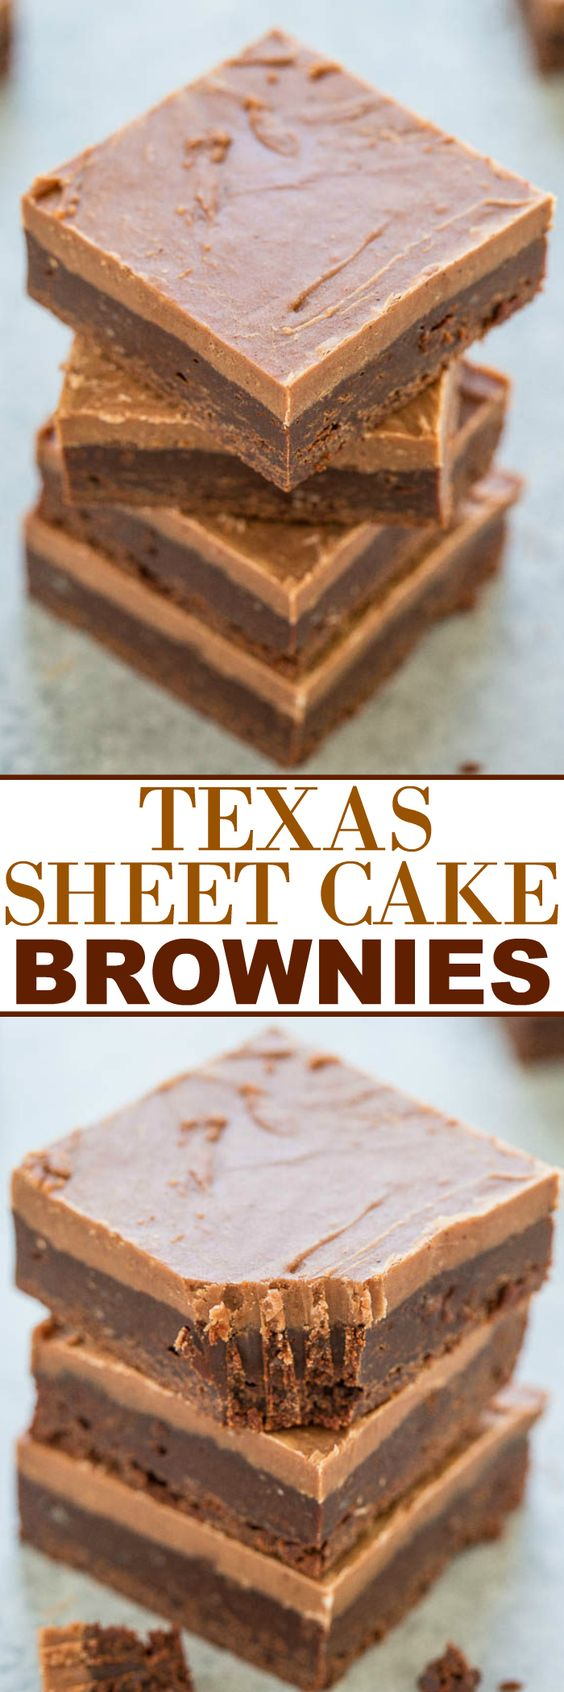 Texas Sheet Cake Brownies Dessert Recipe via Averie Cooks - Easy, FUDGY, no mixer brownies that are rich, chocolaty and decadent!! The classic Texas sheet cake frosting makes them totally IRRESISTIBLE!! The Best EASY Sheet Cakes Recipes - Simple and Quick Party Crowds Desserts for Holidays, Special Occasions and Family Celebrations #sheetcakerecipes #sheetcake #sheetcakes #cakerecipes #cakes #dessertforacrowd #partydesserts #christmasdesserts #thanksgivingdesserts #newyearseve #birthdaydesserts